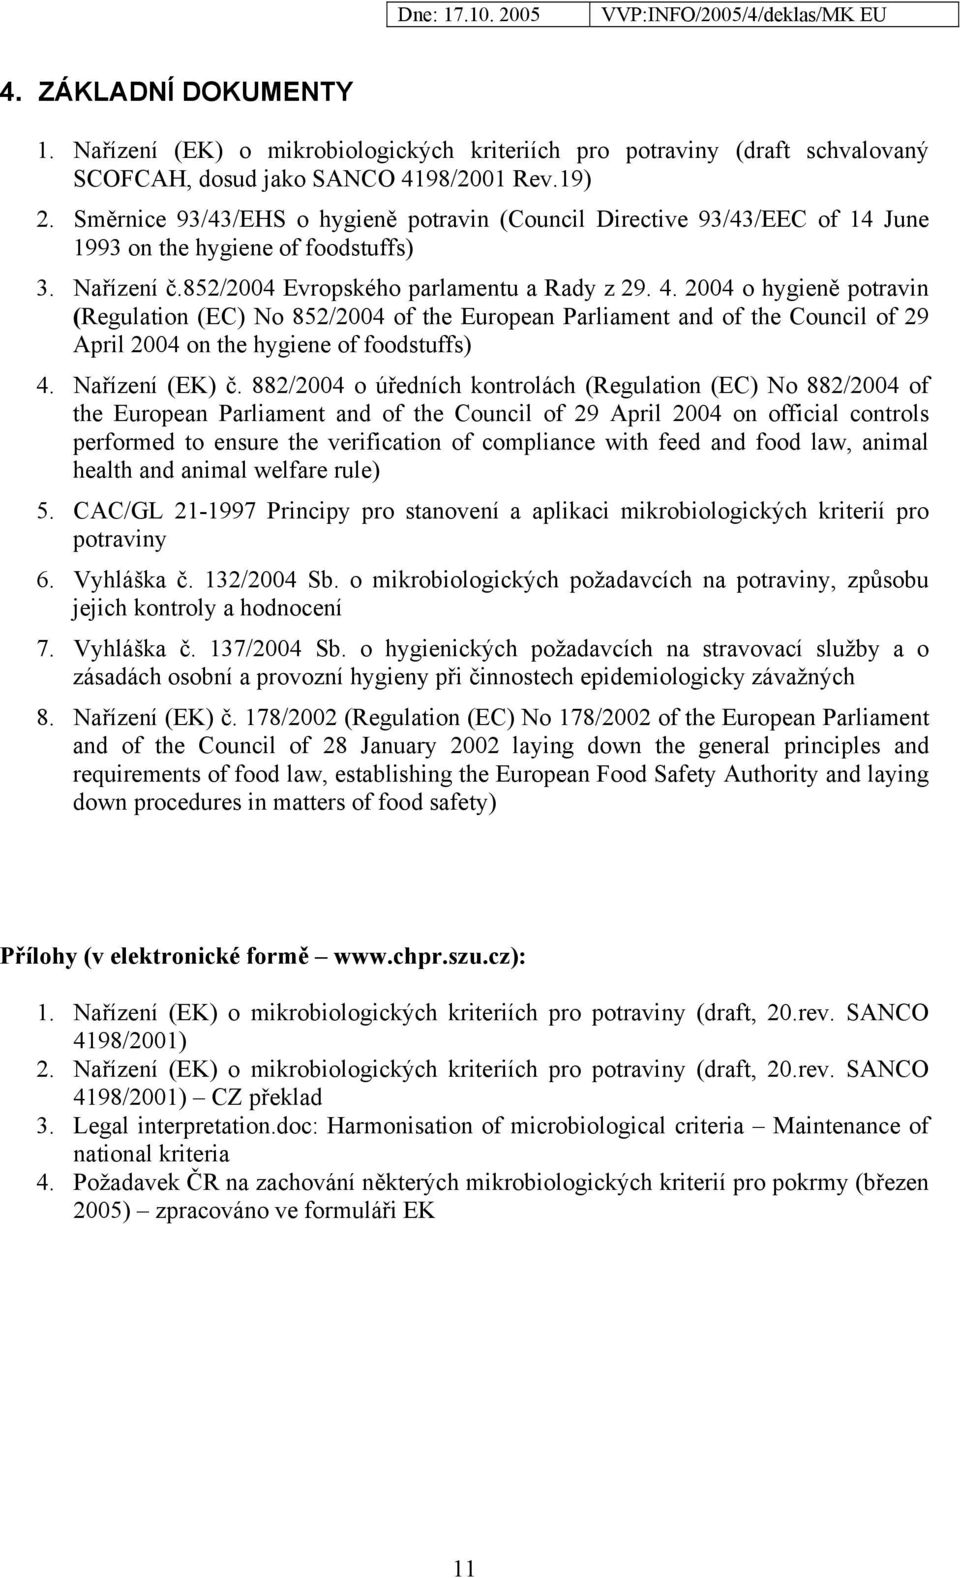 2004 o hygieně potravin (Regulation (EC) No 852/2004 of the European Parliament and of the Council of 29 April 2004 on the hygiene of foodstuffs) 4. Nařízení (EK) č.